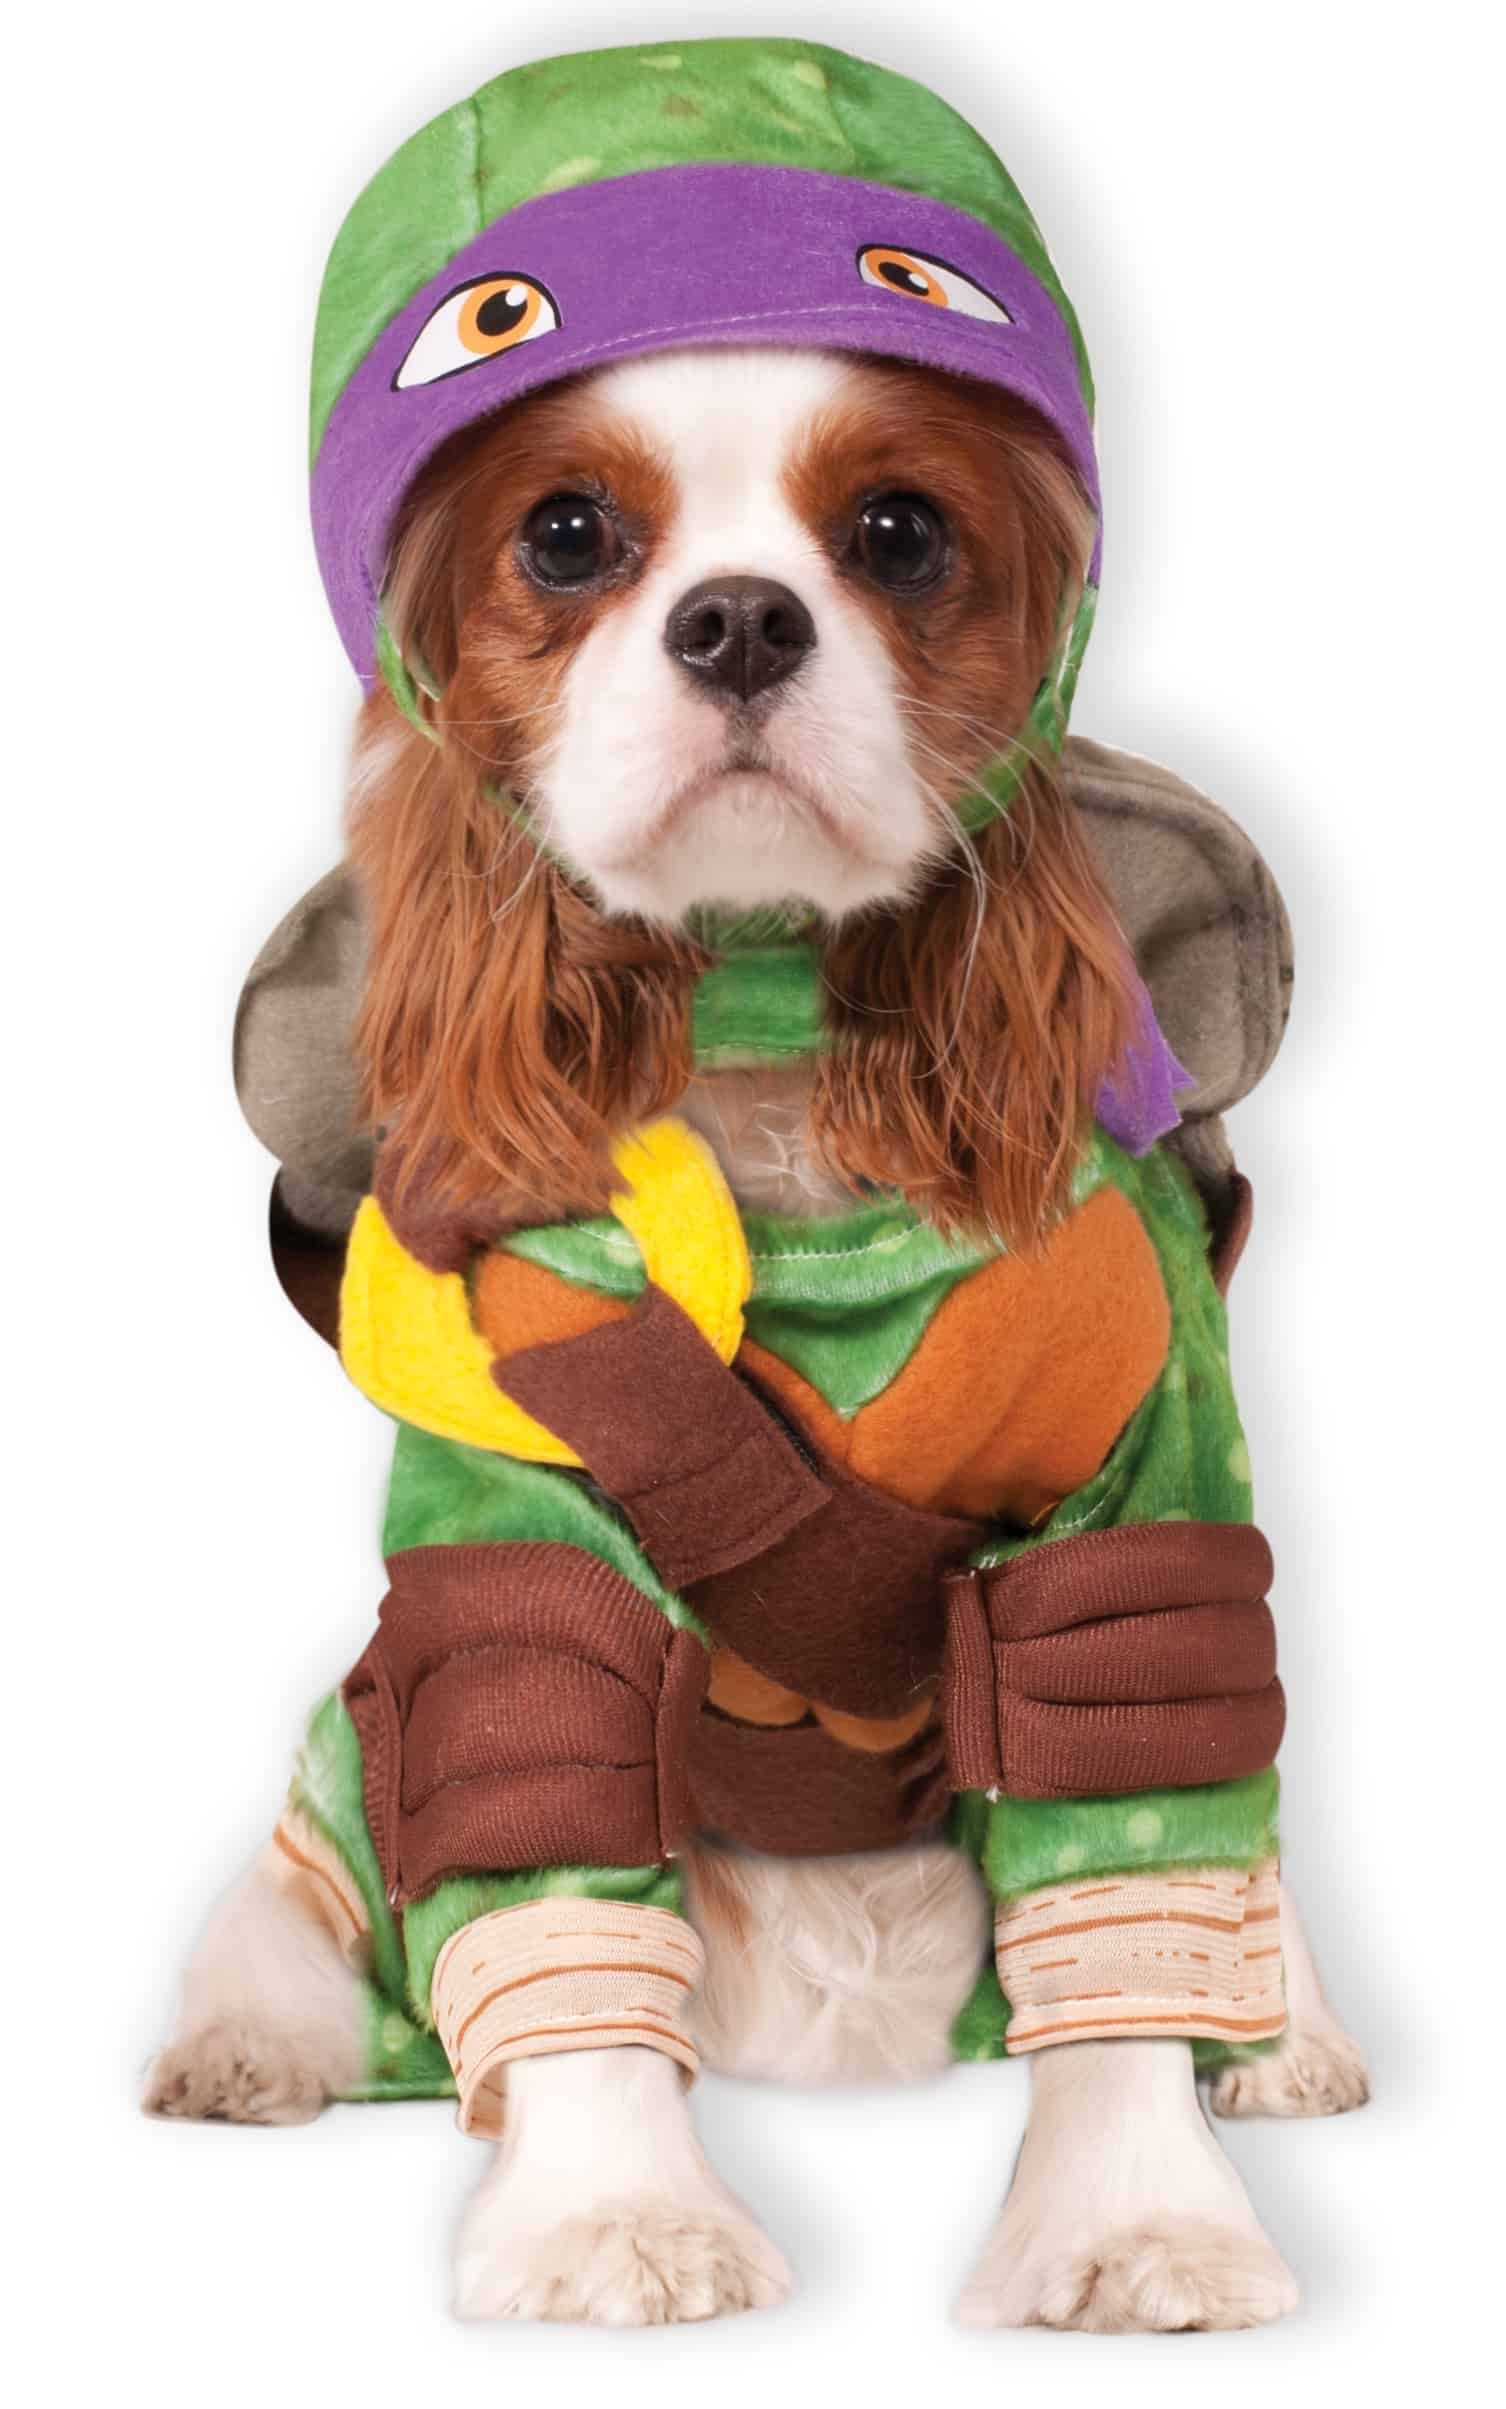 Donatello Teenage Mutant Ninja Turtle Dog Costume